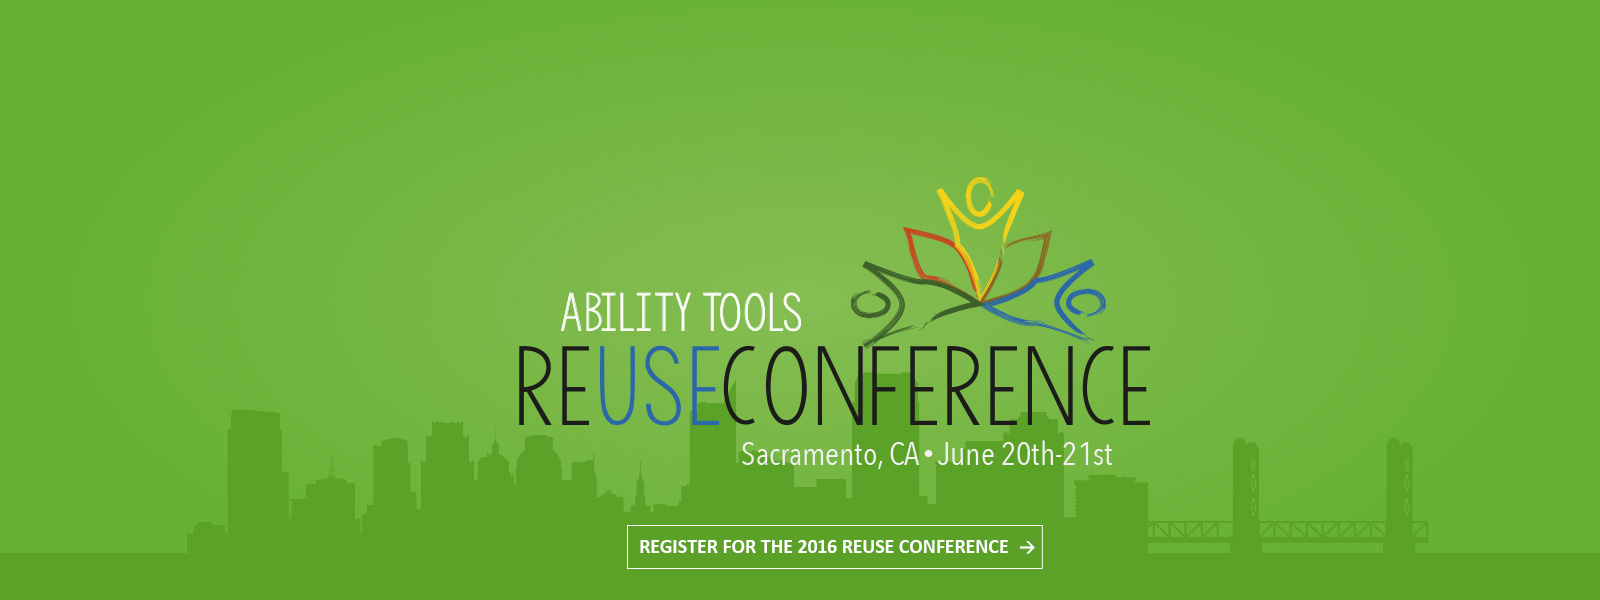 Banner for the Ability Tools 2016 Reuse Conference - Sacramento, CA on June 20th & 21st. Click to register for the 2016 Reuse Conference.